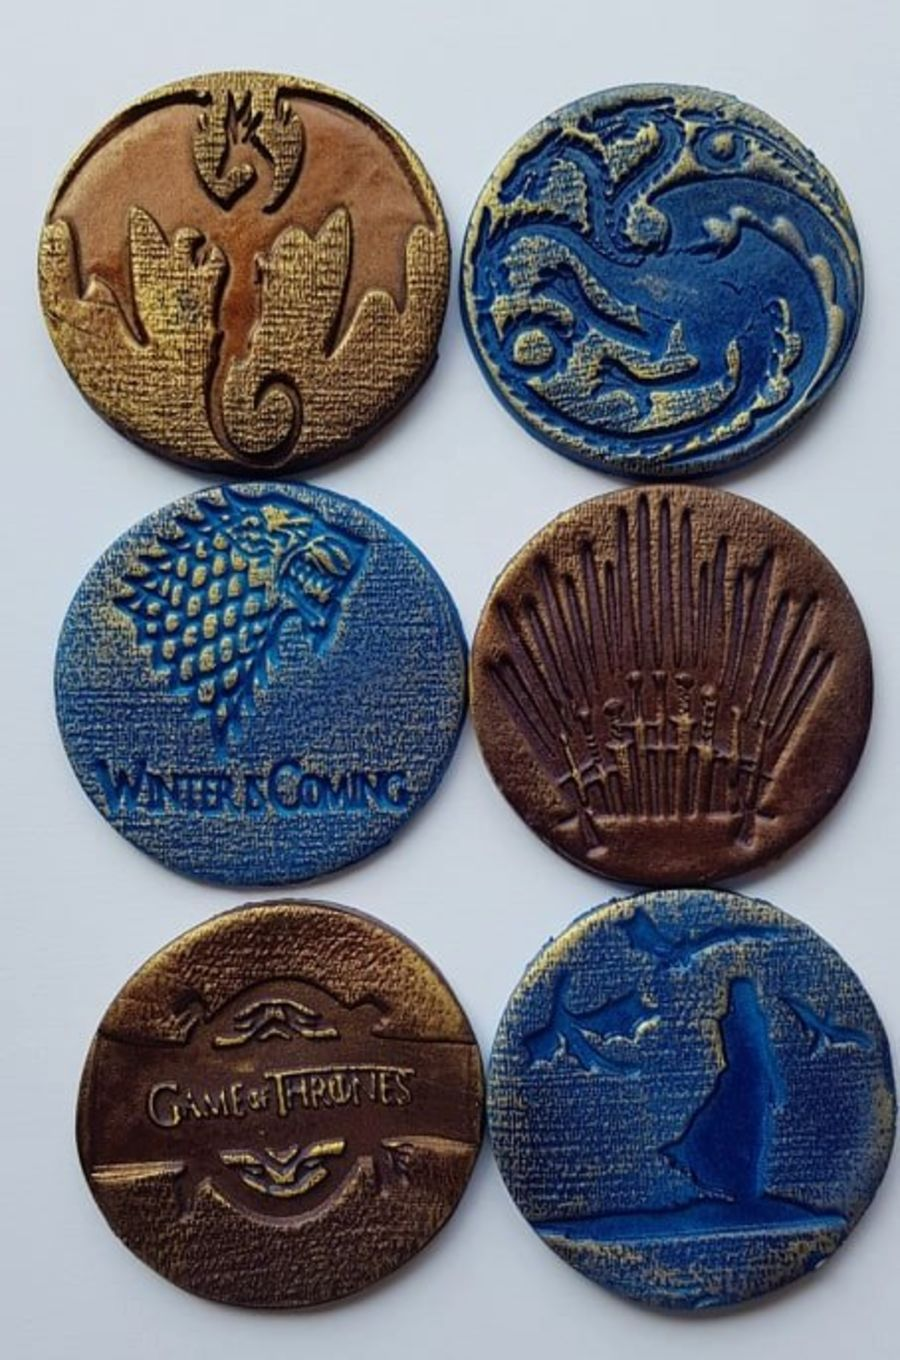 2 inch round stamps, Game of thrones fondant boss stamps